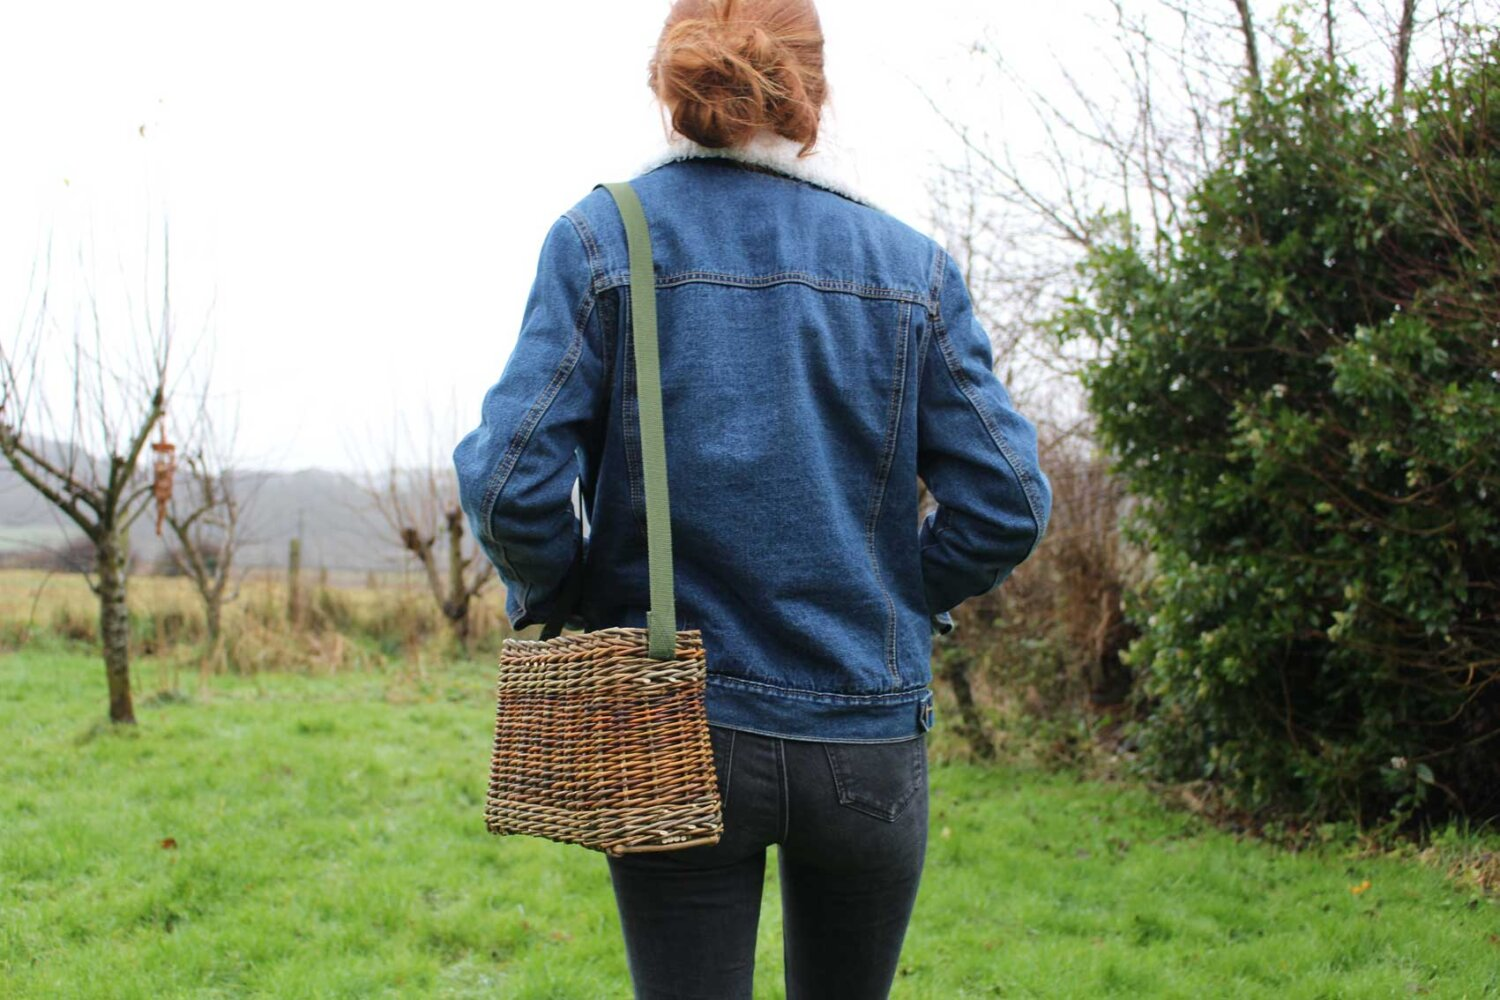 willow workshop to make a bag